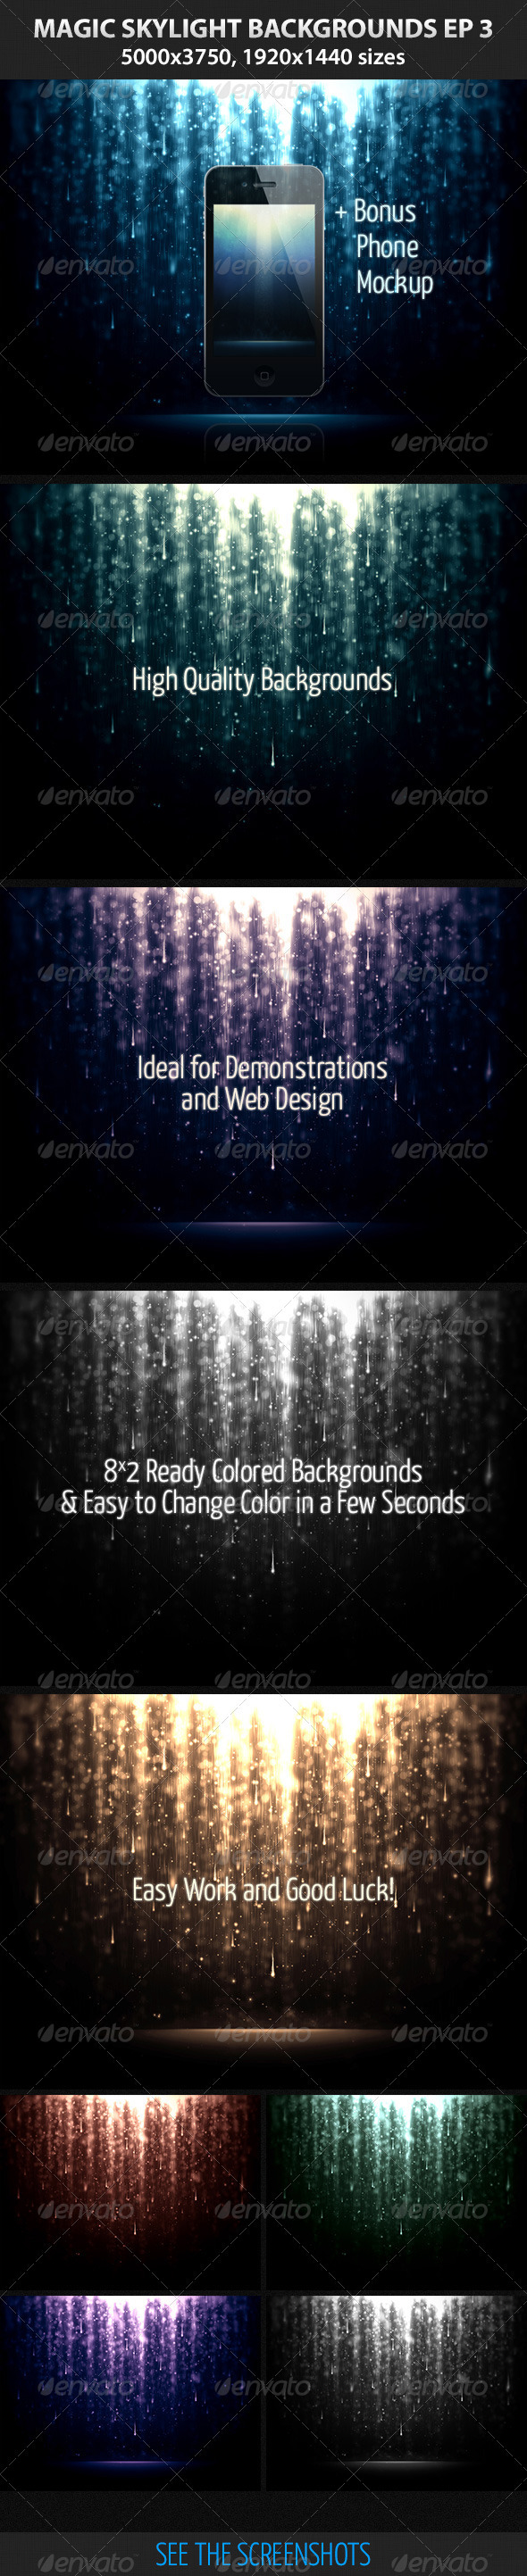 GraphicRiver Magic Skylight Backgrounds EP 3 3310877